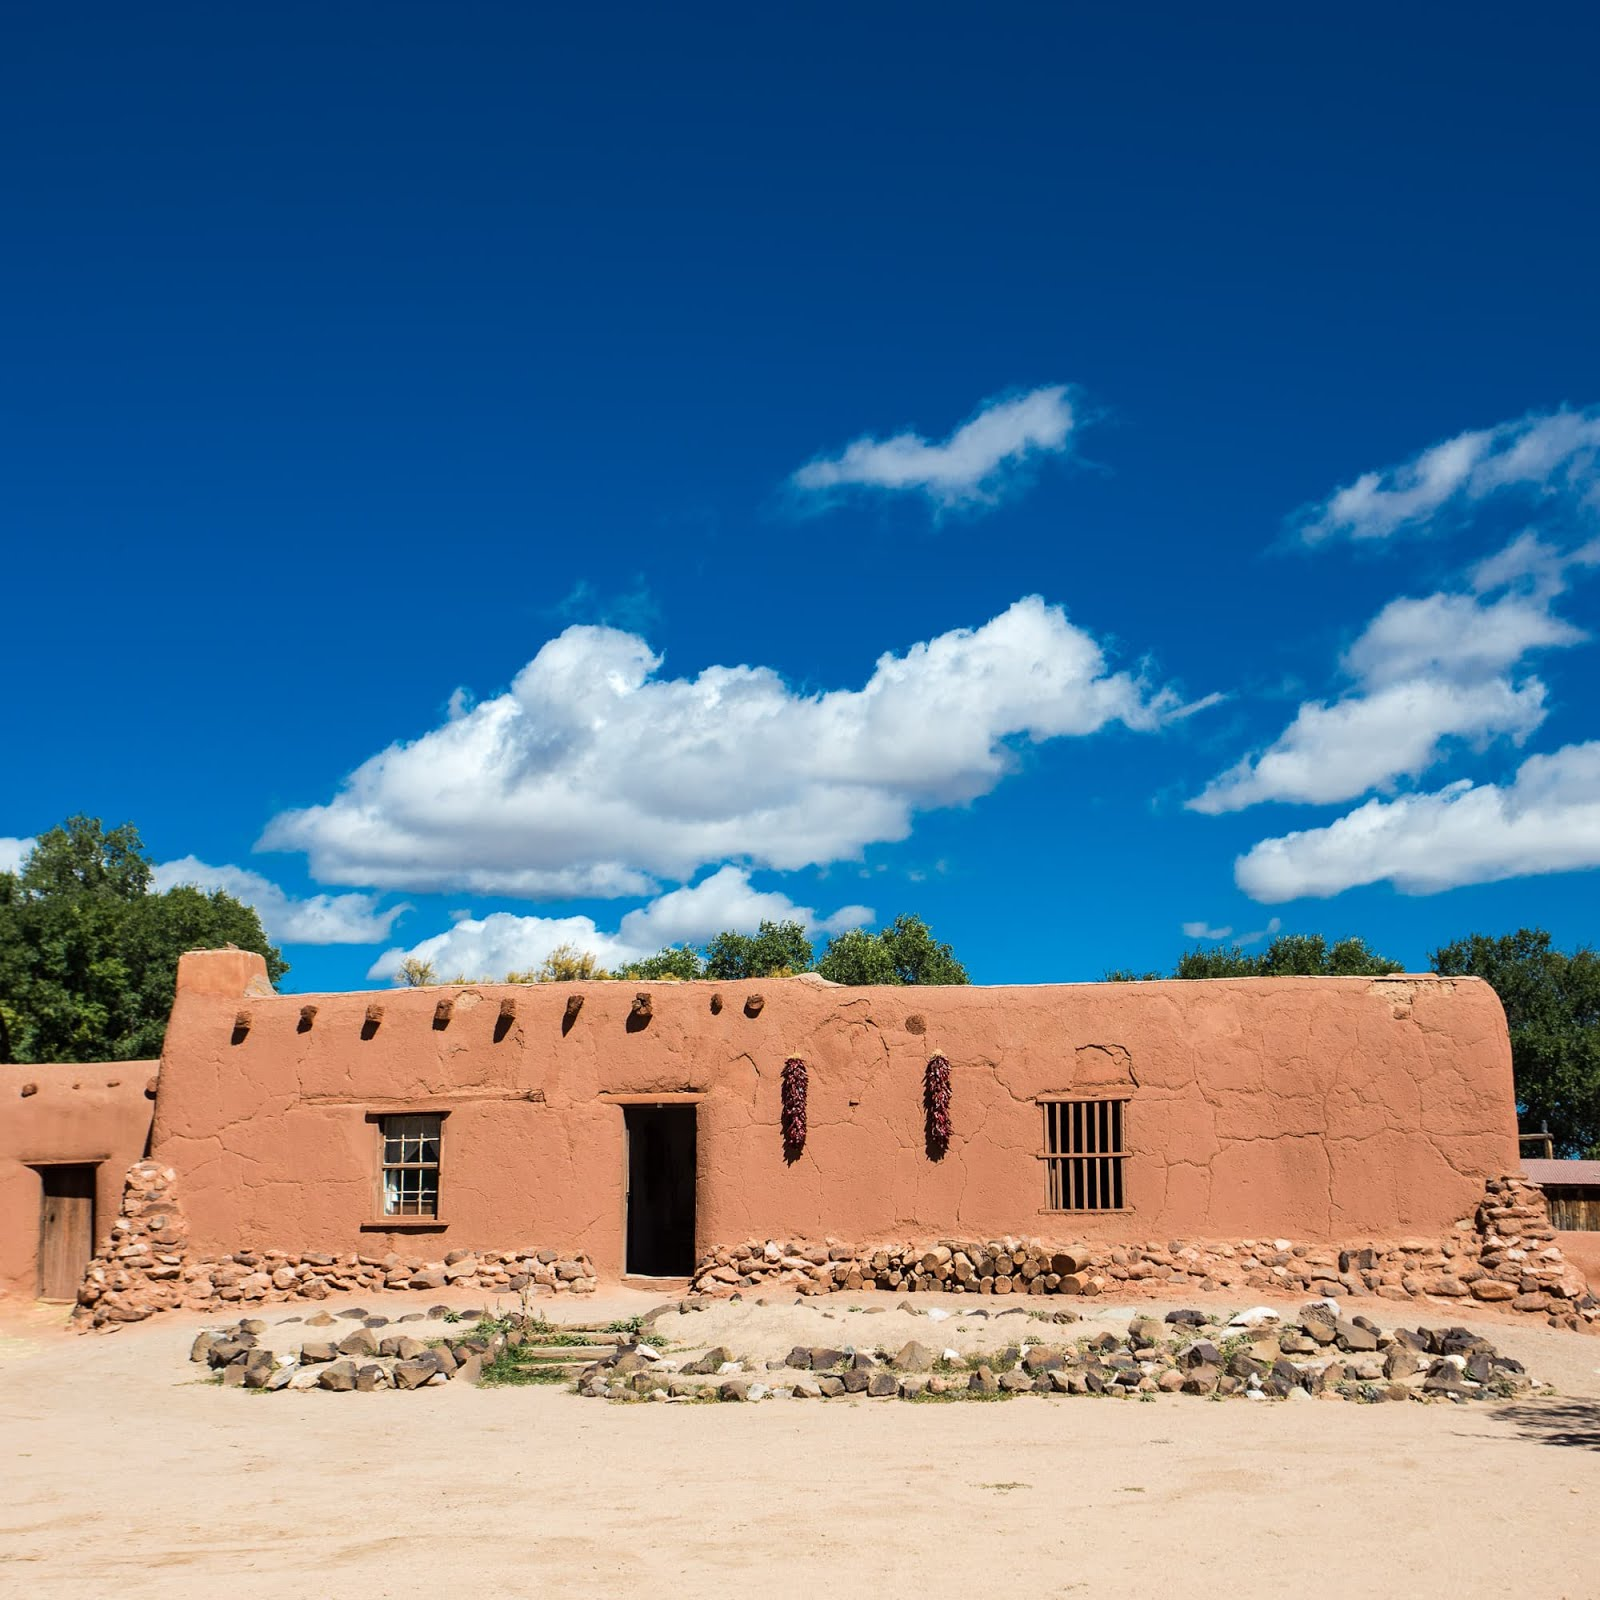 Things To Do In Santa Fe Nm: What To Do When Visiting Santa Fe, New Mexico